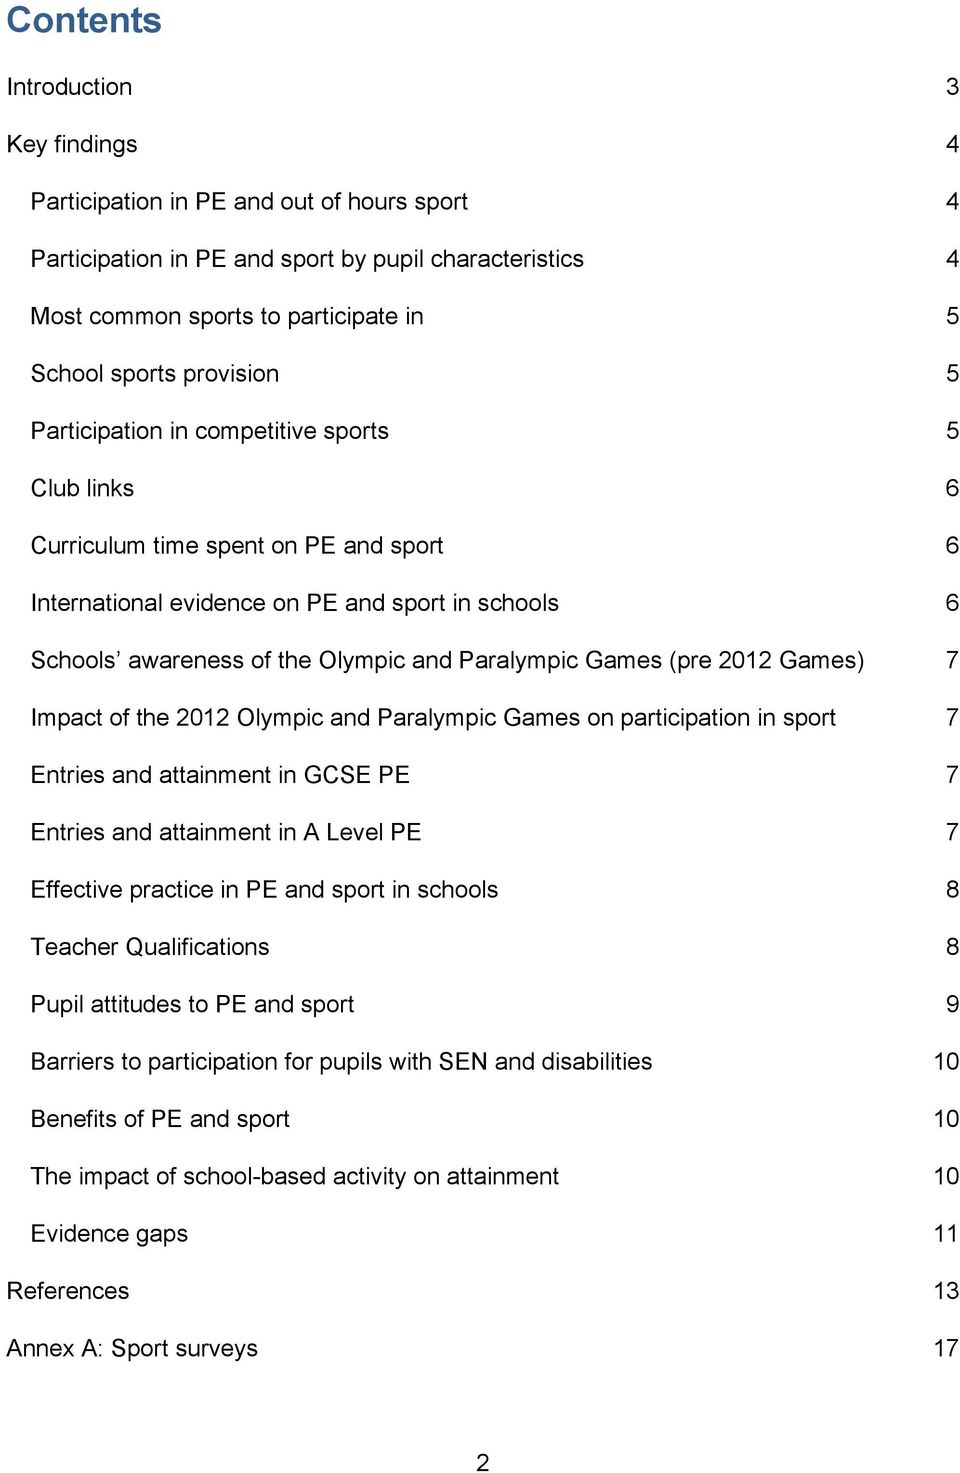 Paralympic Games (pre 2012 Games) 7 Impact of the 2012 Olympic and Paralympic Games on participation in sport 7 Entries and attainment in GCSE PE 7 Entries and attainment in A Level PE 7 Effective